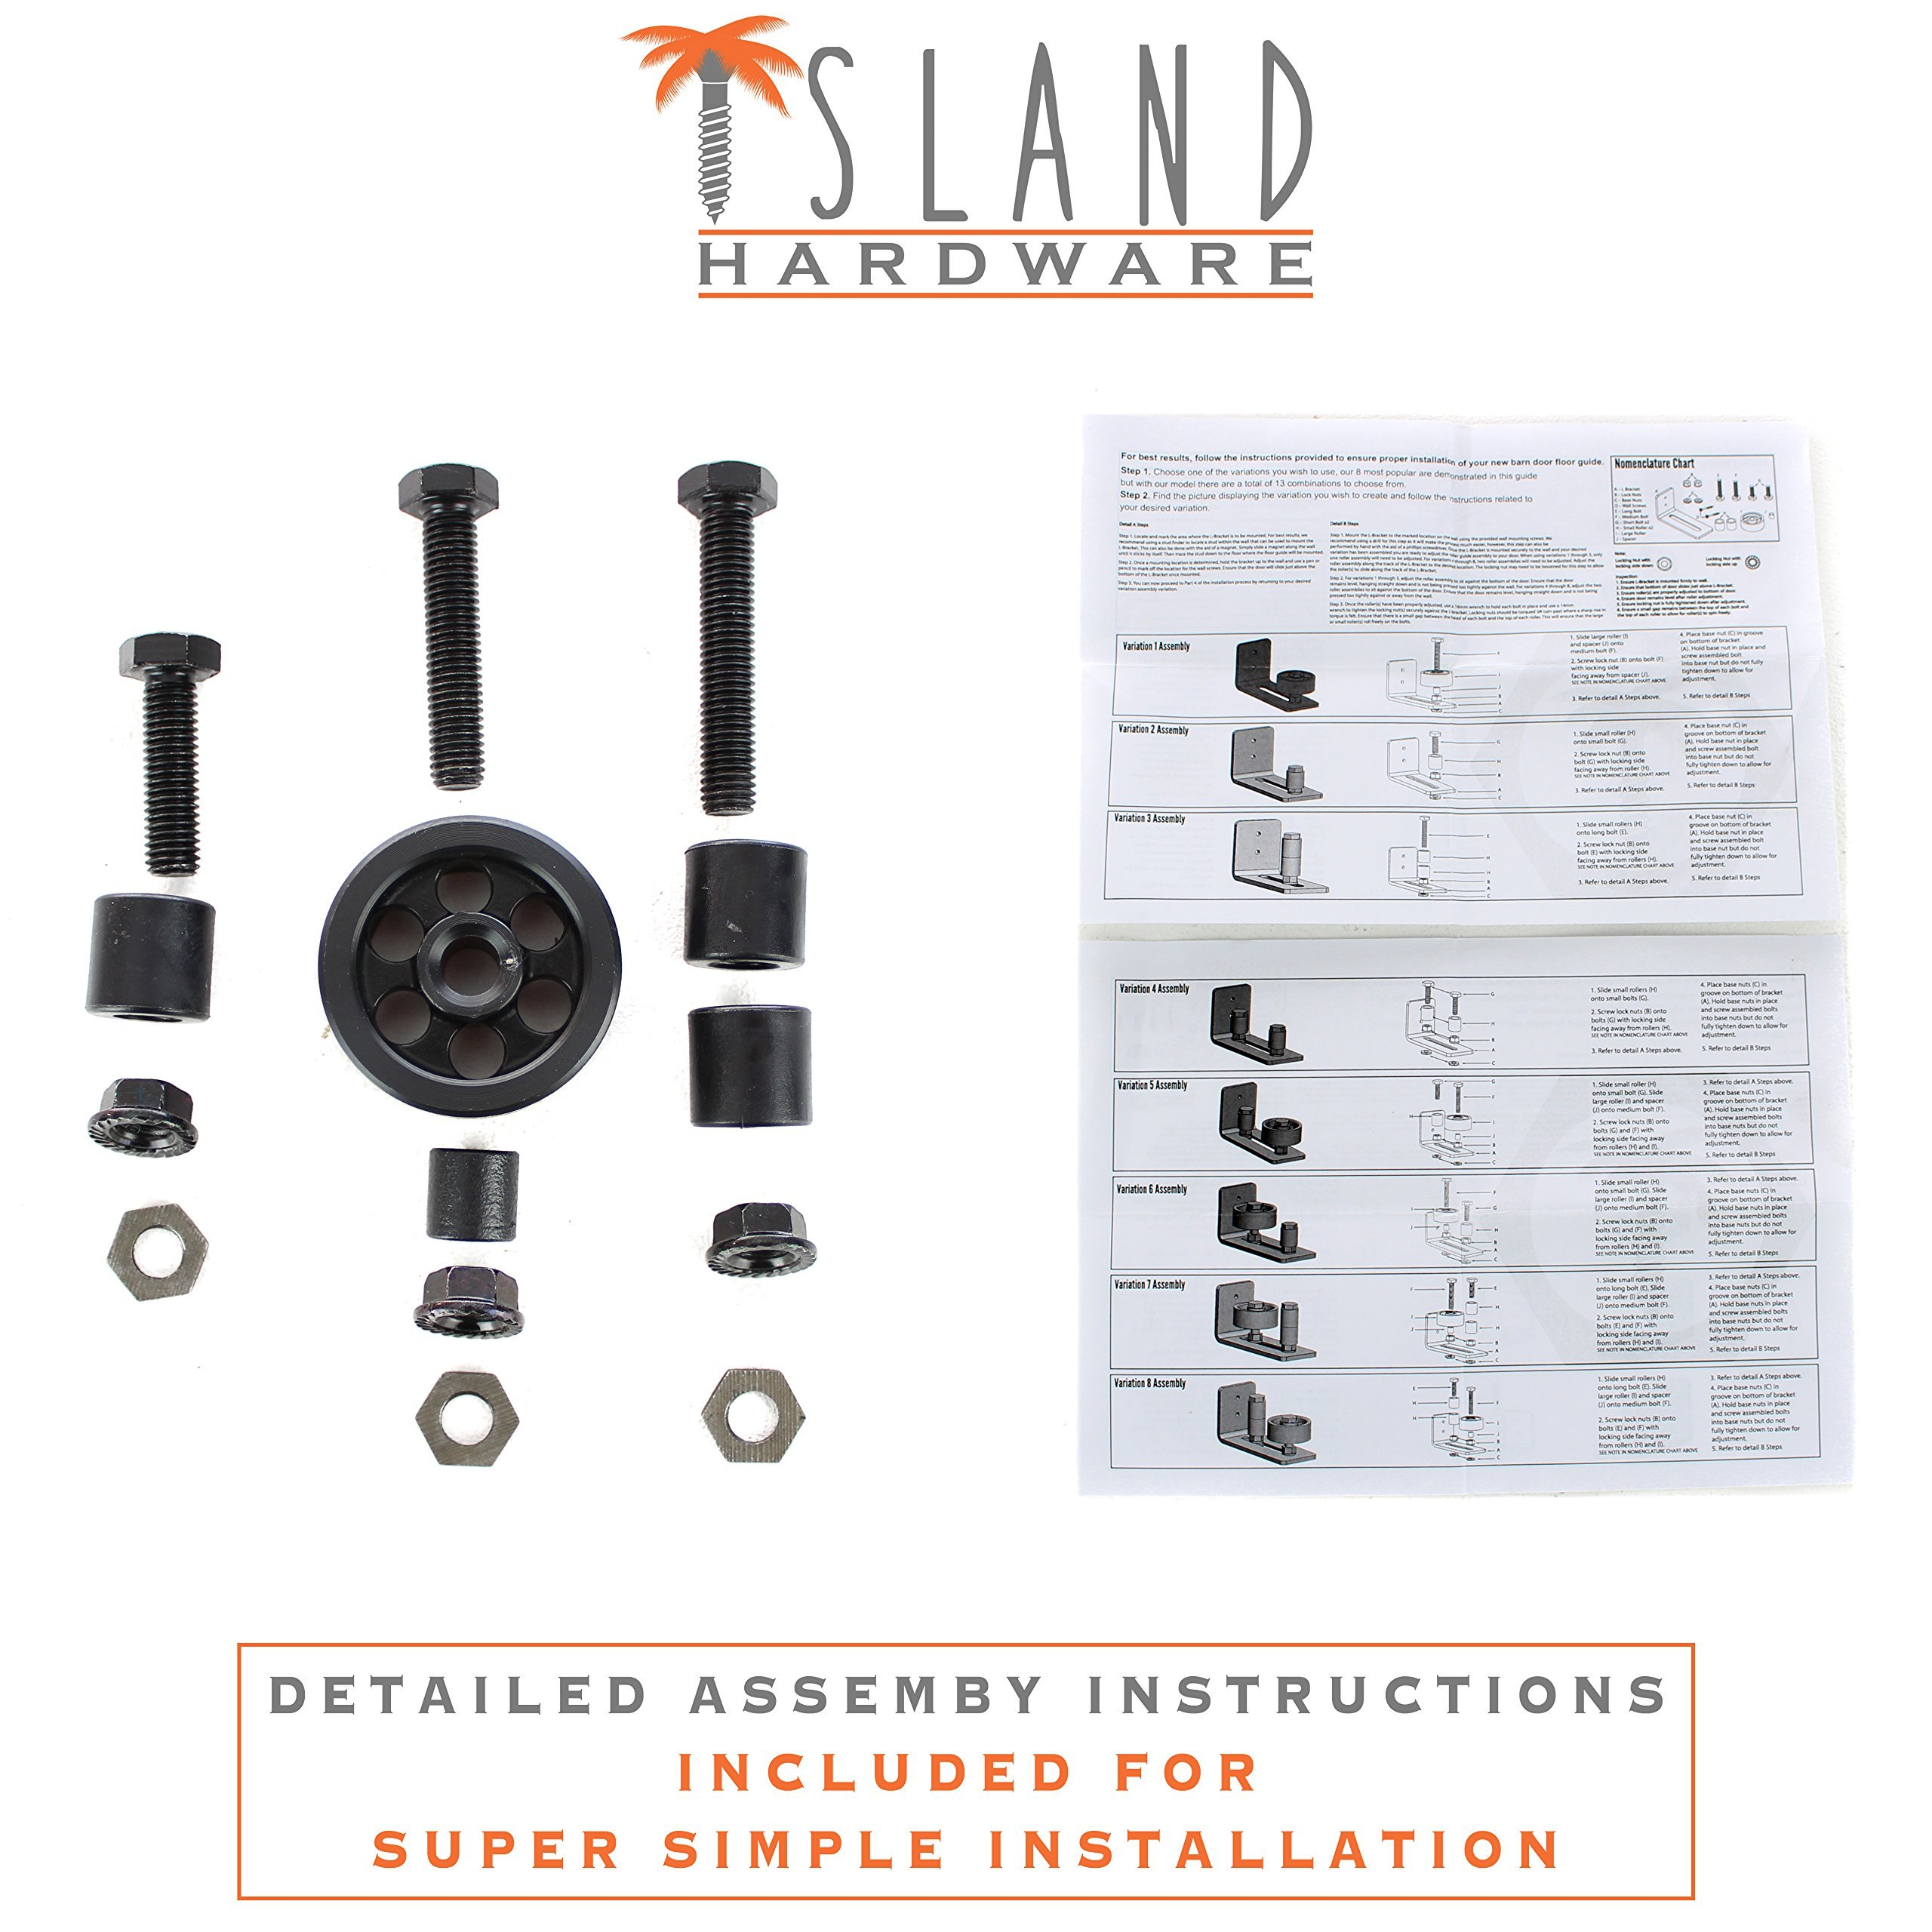 Ultimate Barn Door Floor Guide - Adjustable Sliding Channel & Stay Roller by Island Hardware with 13 Different Setups - Premium Black Finish, Wall Mounted & Flush to Floor, Fits All Barn Doors by Island Hardware (Image #8)